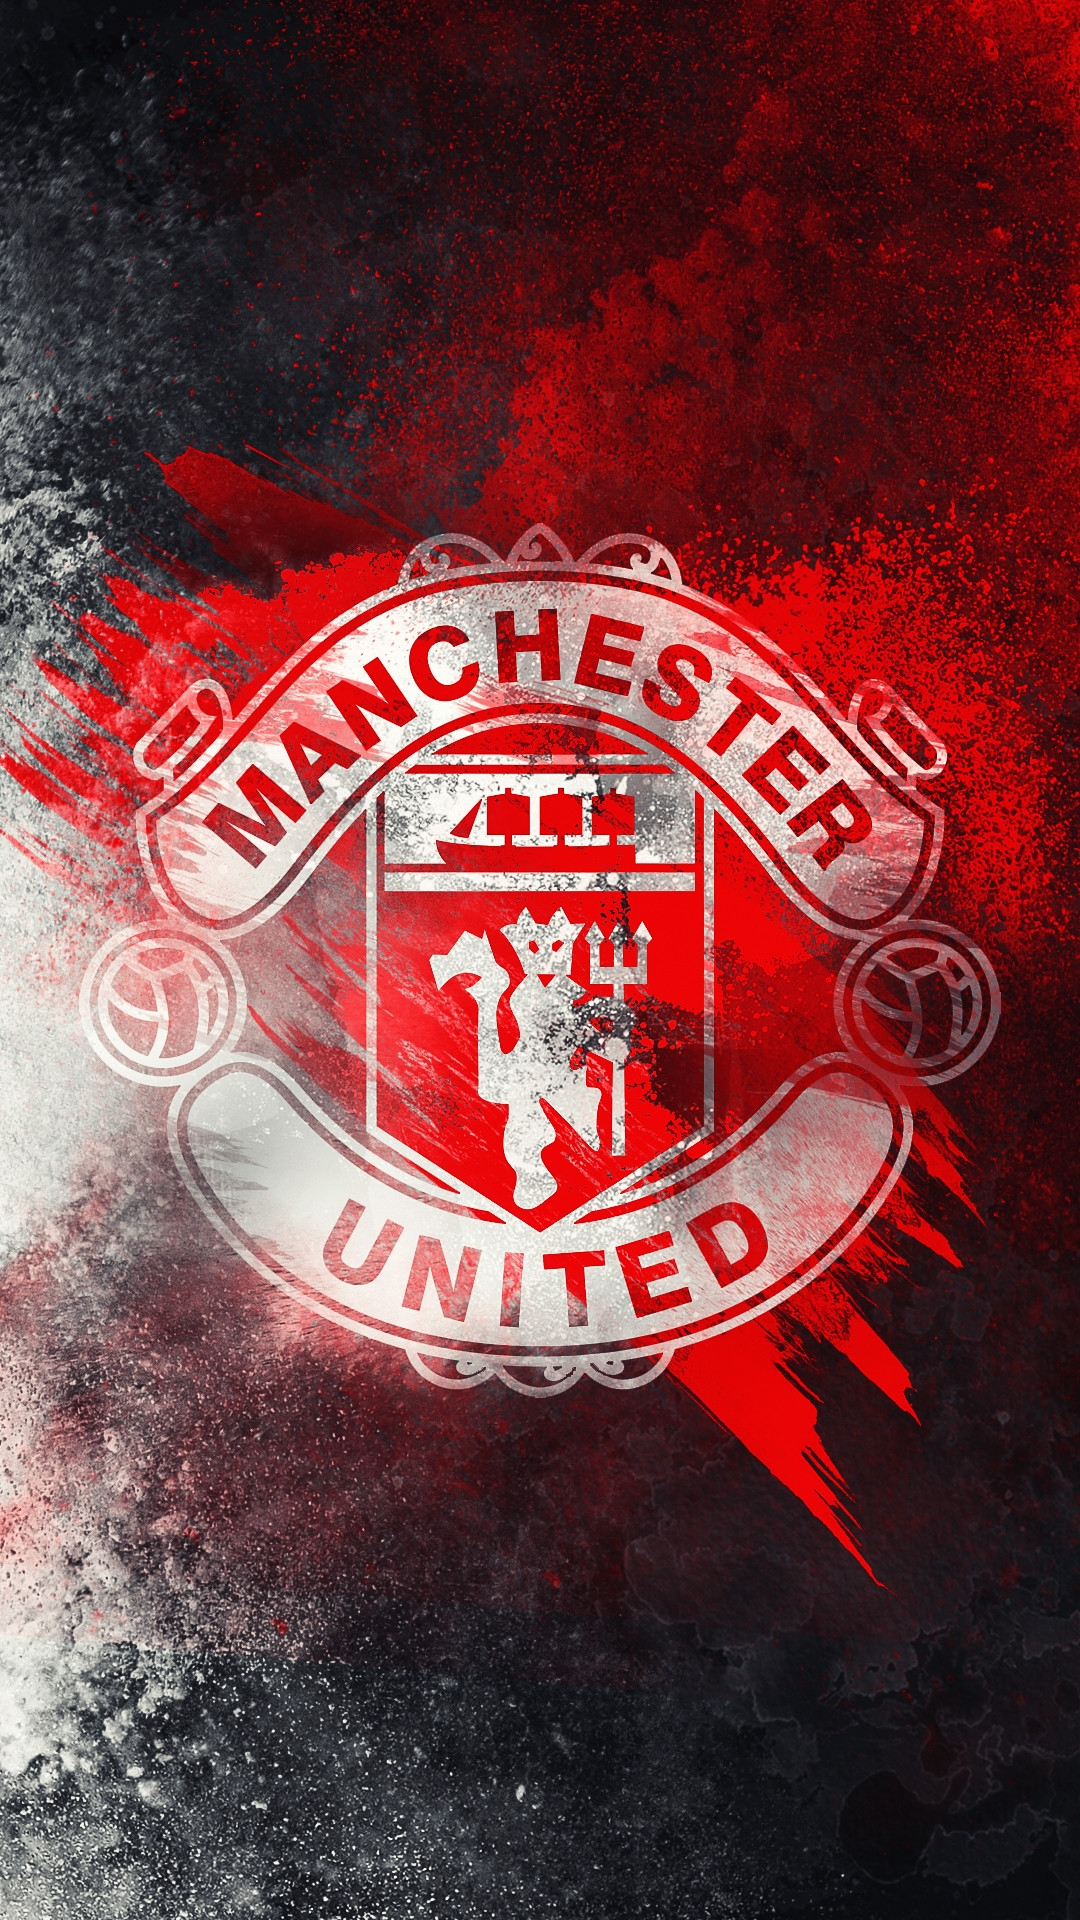 New Manchester United Wallpapers Hd 2017 Great Foofball Club 1080x1920